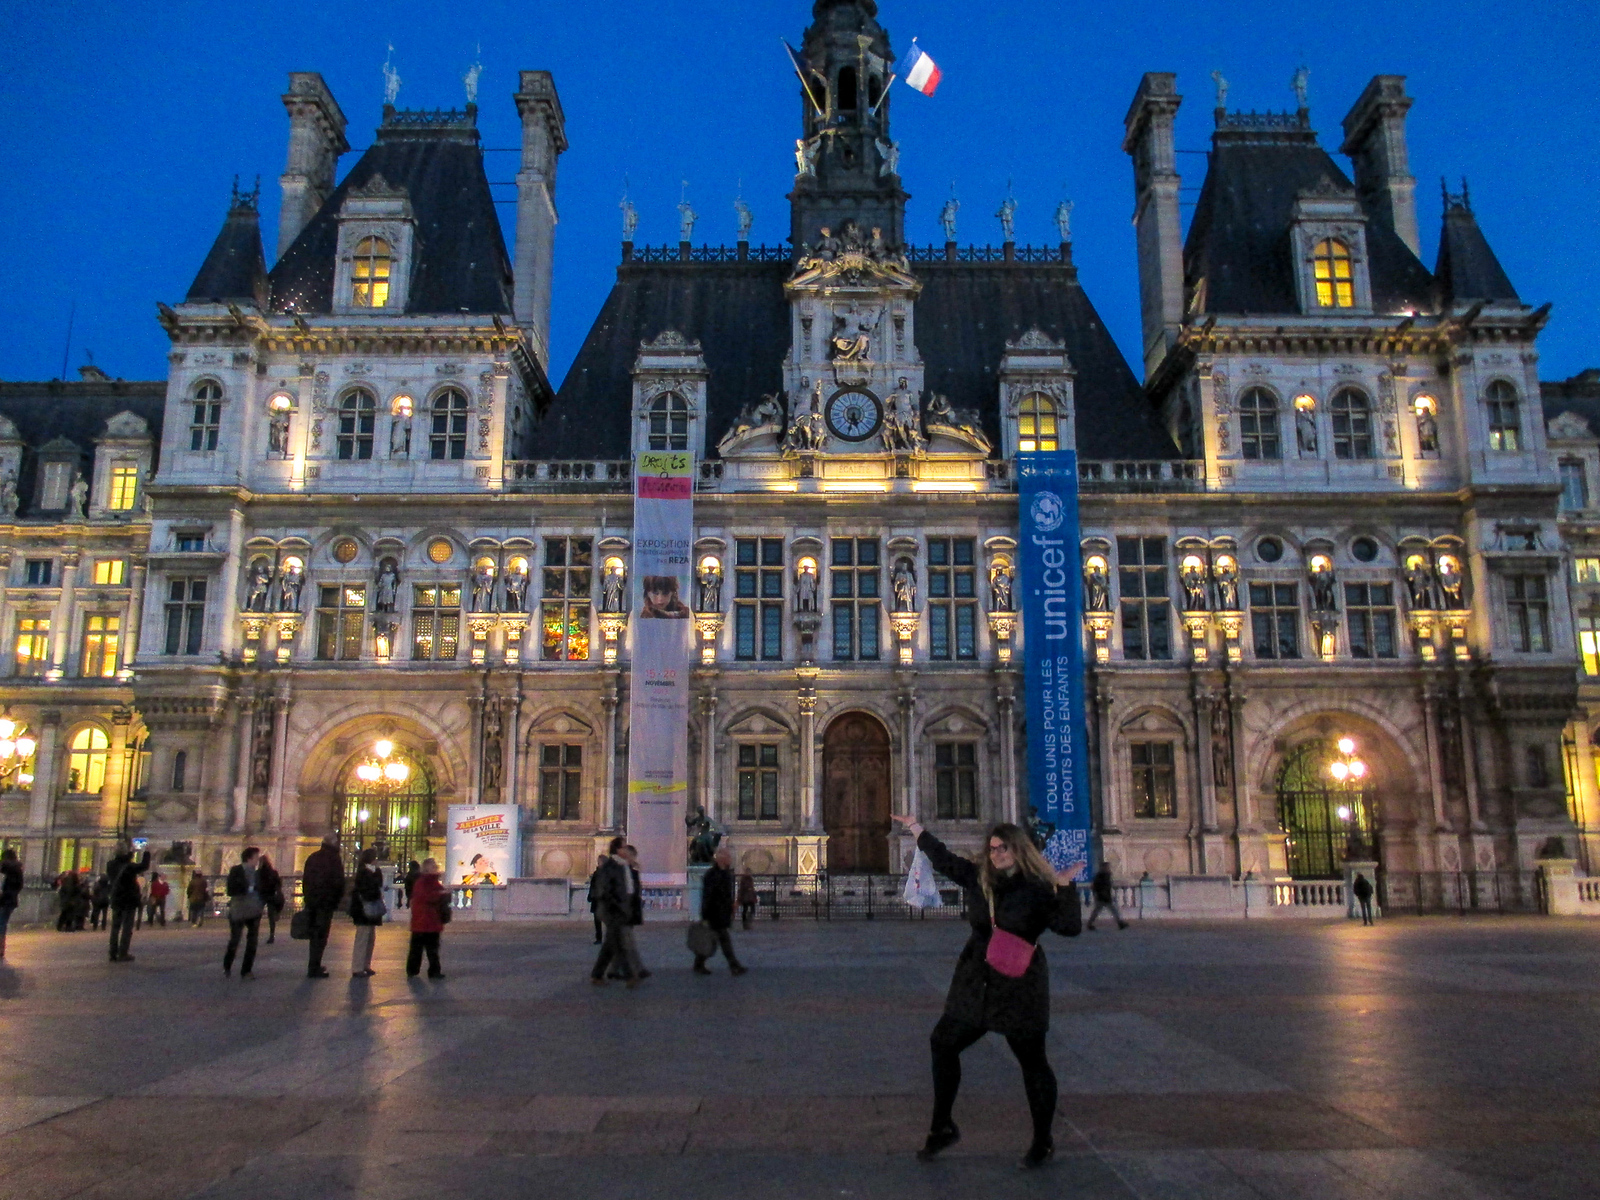 visiting paris for the first time? be sure to explore the city at night.